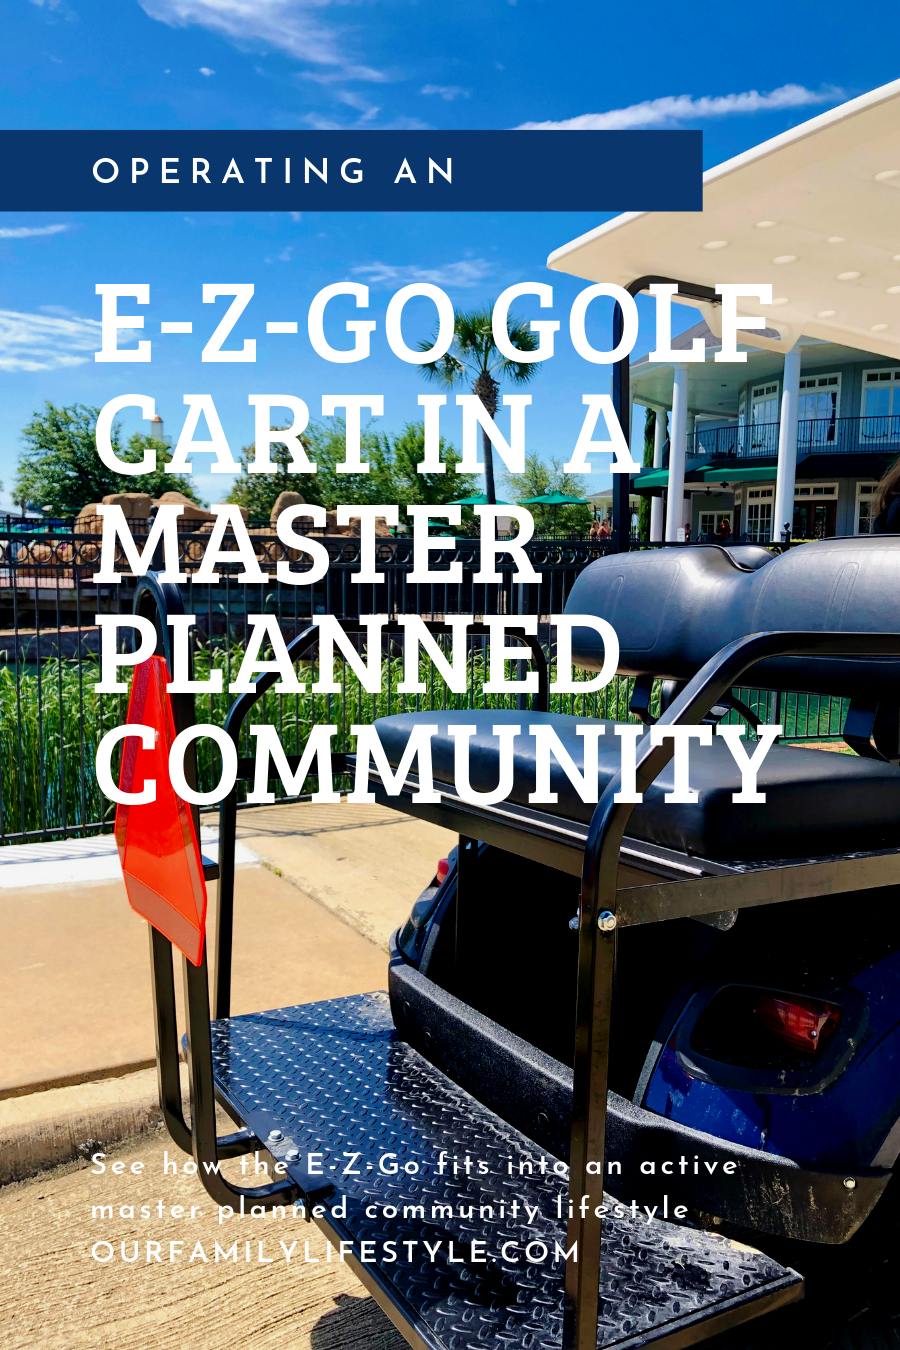 Operating an E-Z-GO Golf Cart in a Master Planned Community